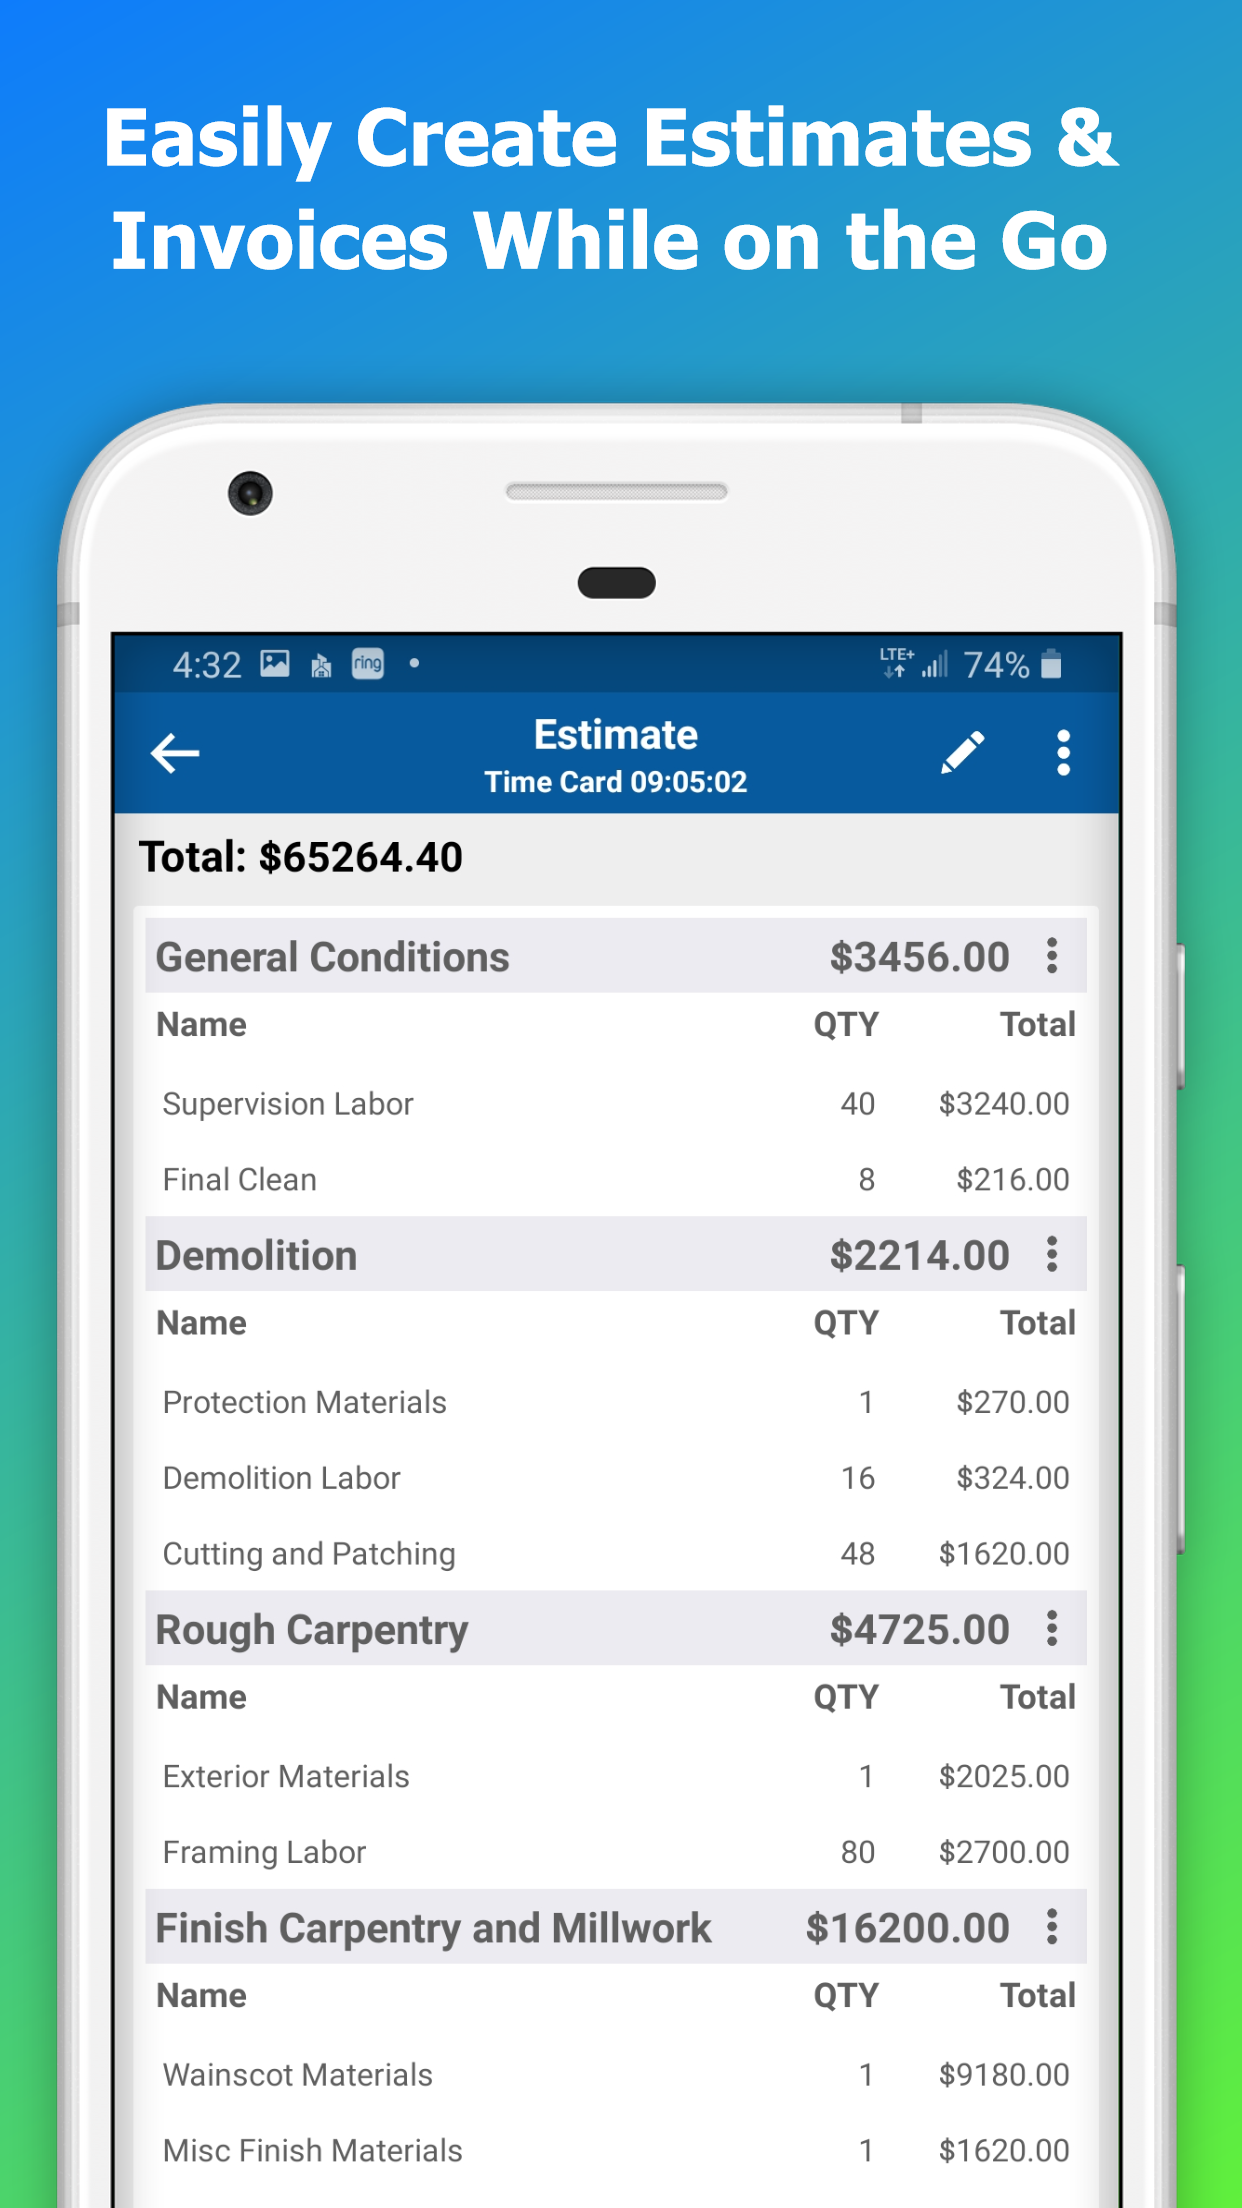 Need to generate a bid or invoice in a hurry while in the field - not a problem!  It just takes a couple minutes to create a new one and get it submitted to your client.